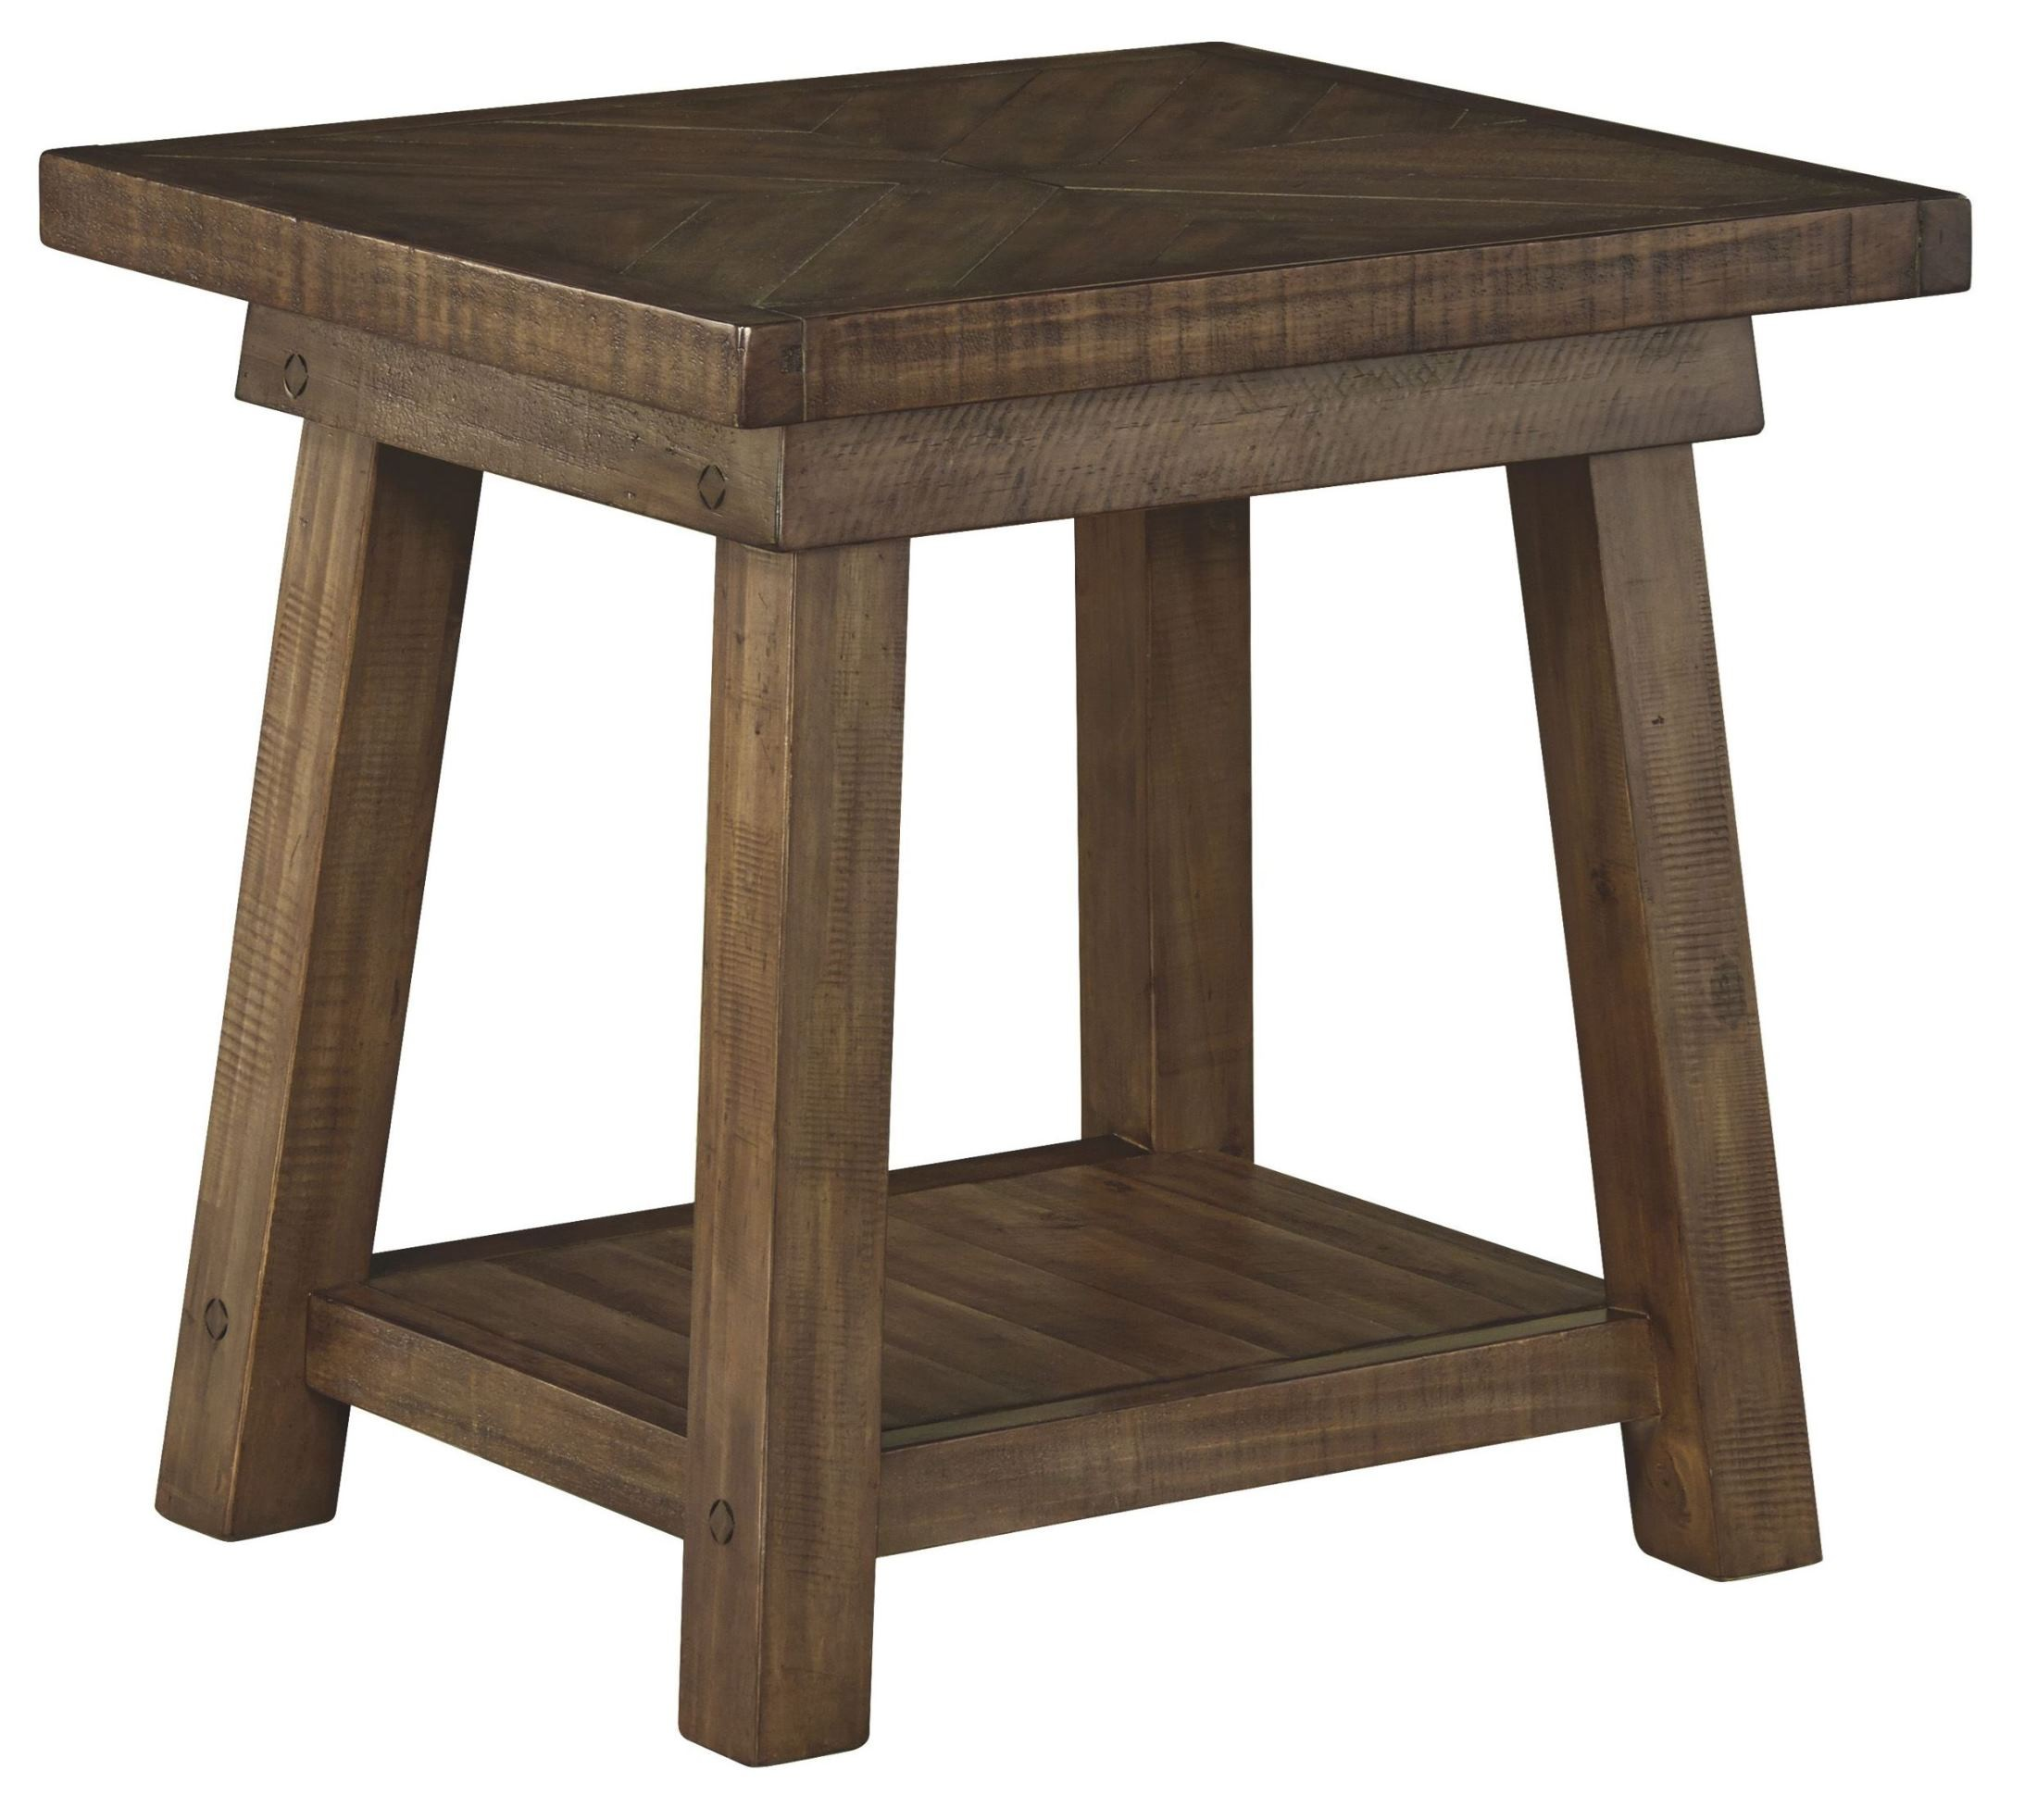 Dondie Rustic Brown Rectangular End Table From Ashley. Desk With Filing Cabinet Drawer. Front Desk Administrator. Nesting End Tables. Red Chest Of Drawers Bedroom. Clear Pool Table. White Tray Table. Wooden Work Desk. Table Booster Seat For Toddler